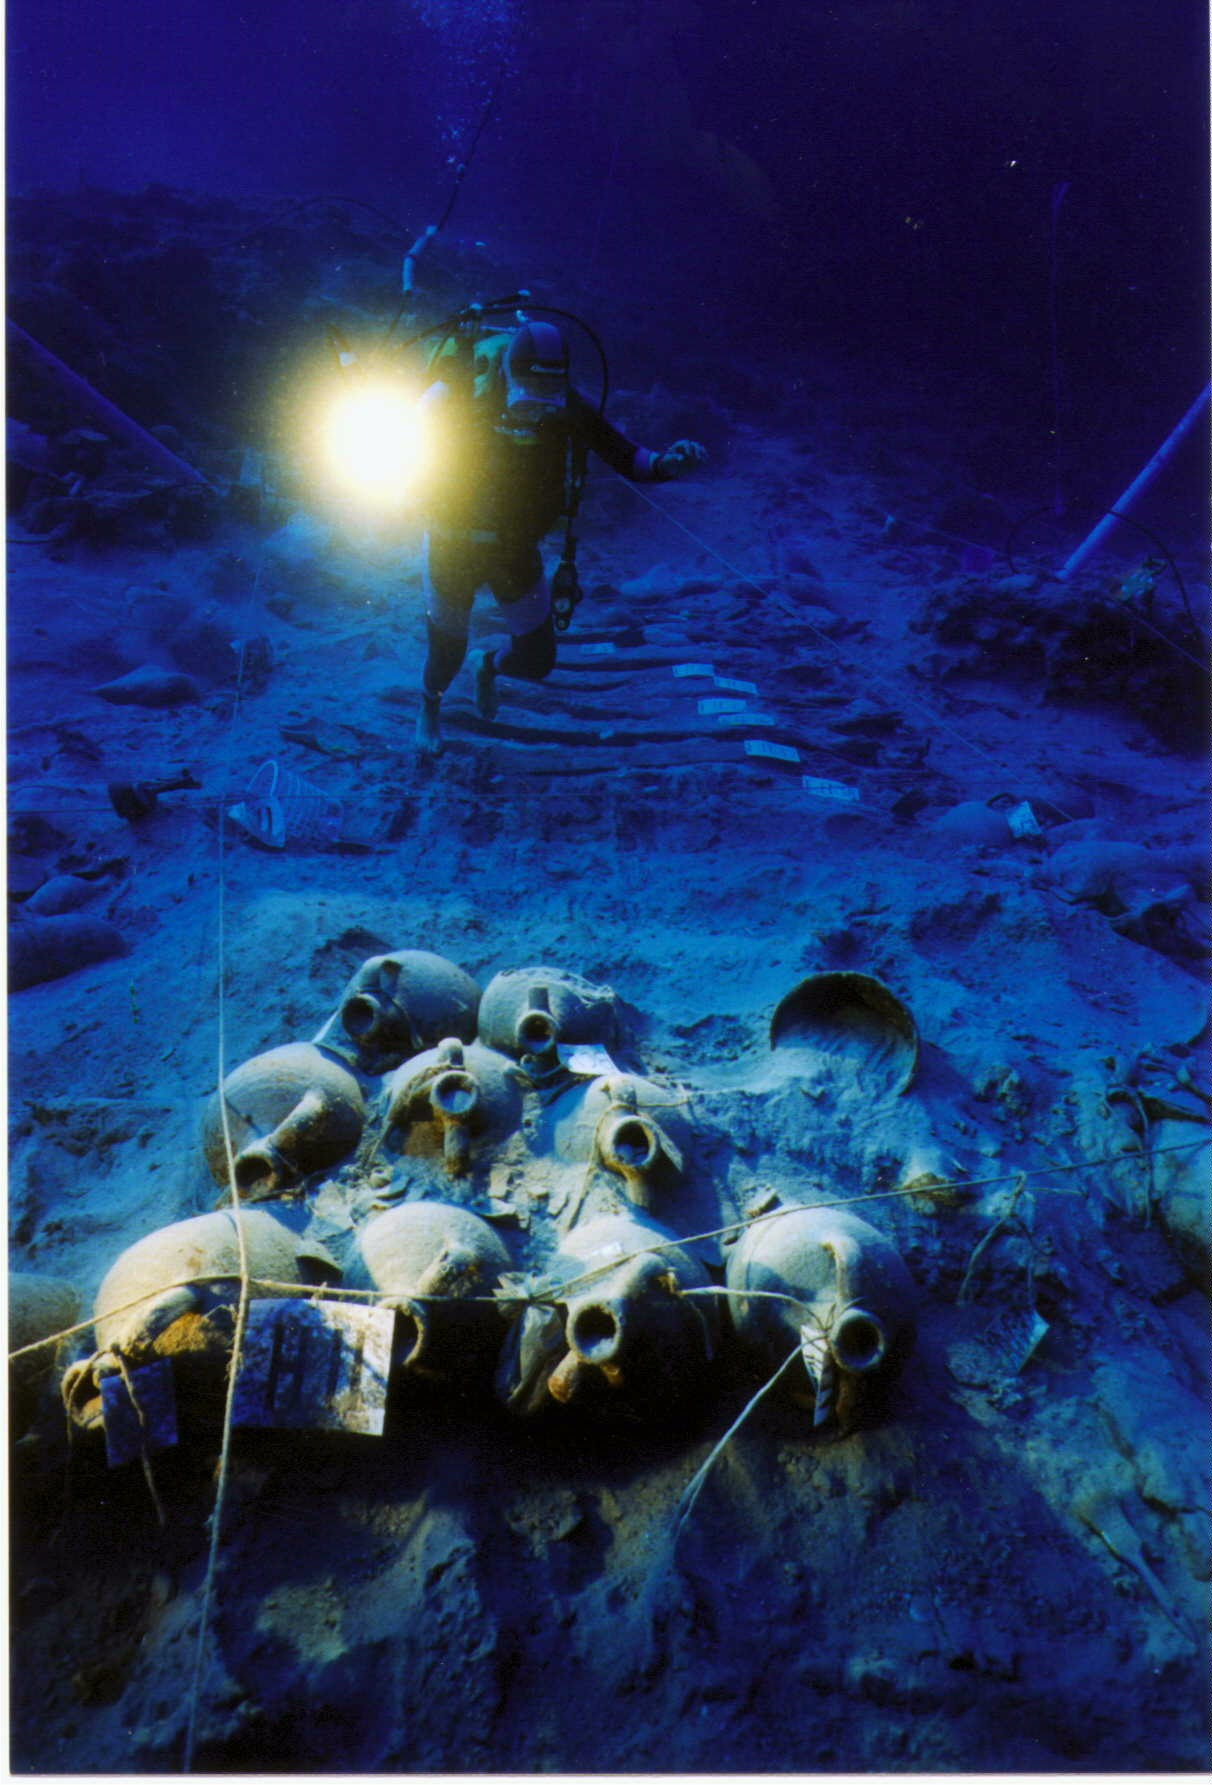 Protecting Underwater Archeological Sites